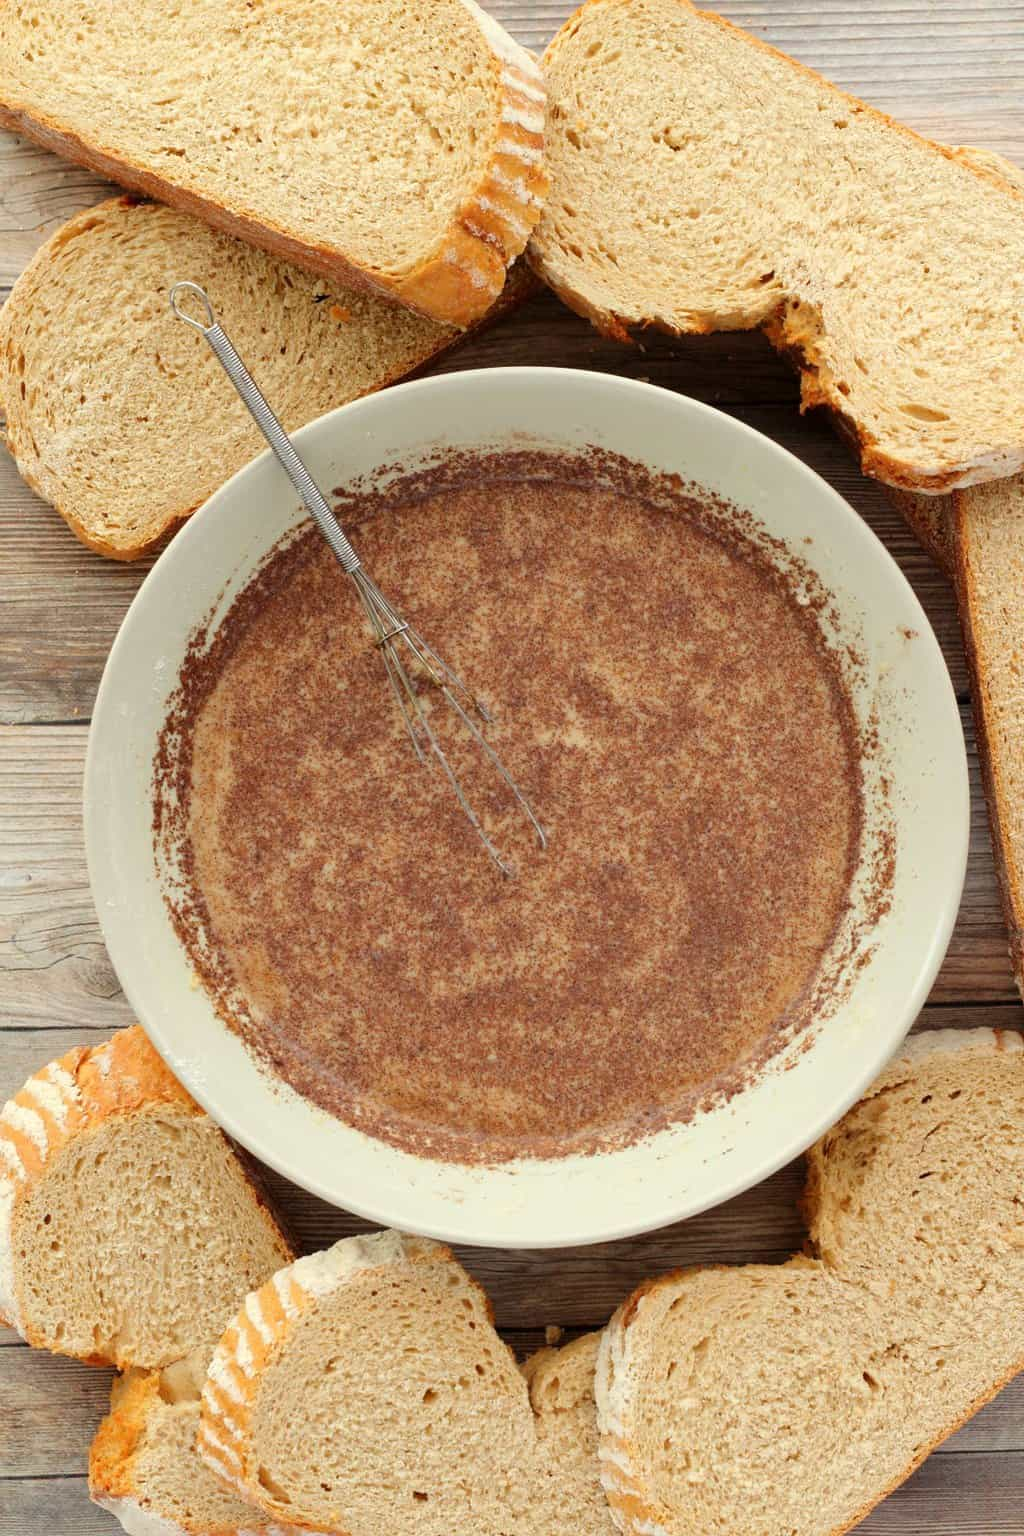 A bowl with the dipping mix for vegan french toast, surrounded by slices of sourdough bread.